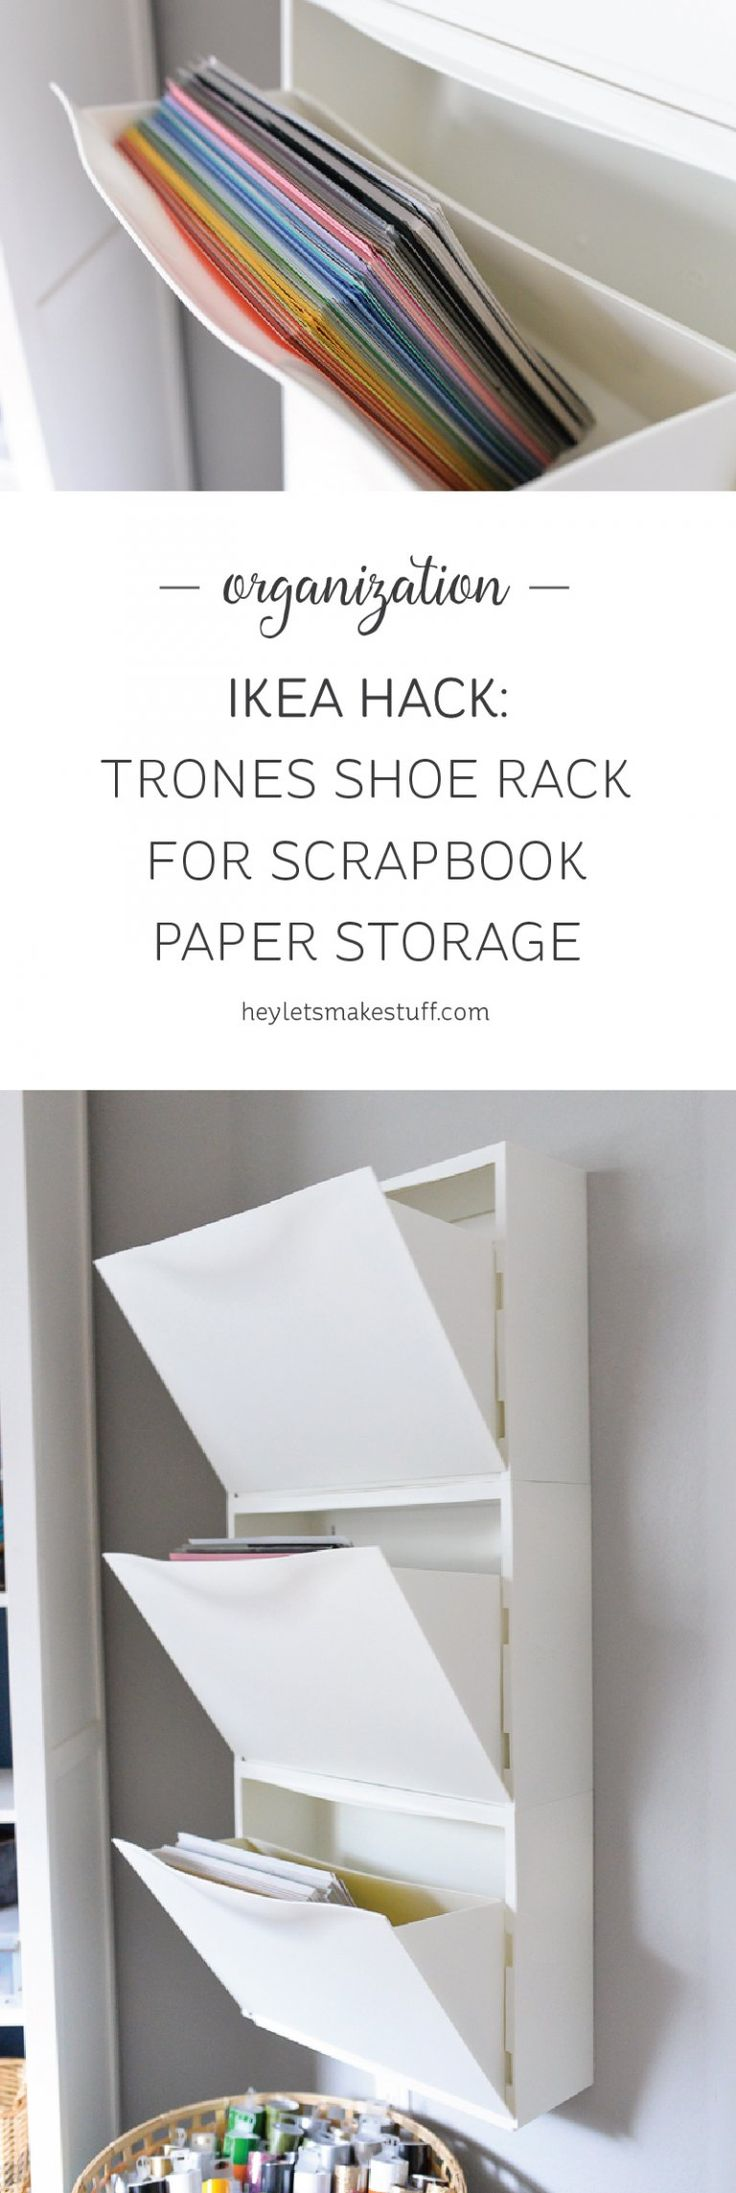 use this ikea hack trones shoe holders are the perfect size and shape for holding all of your paper plus it takes up so little space in